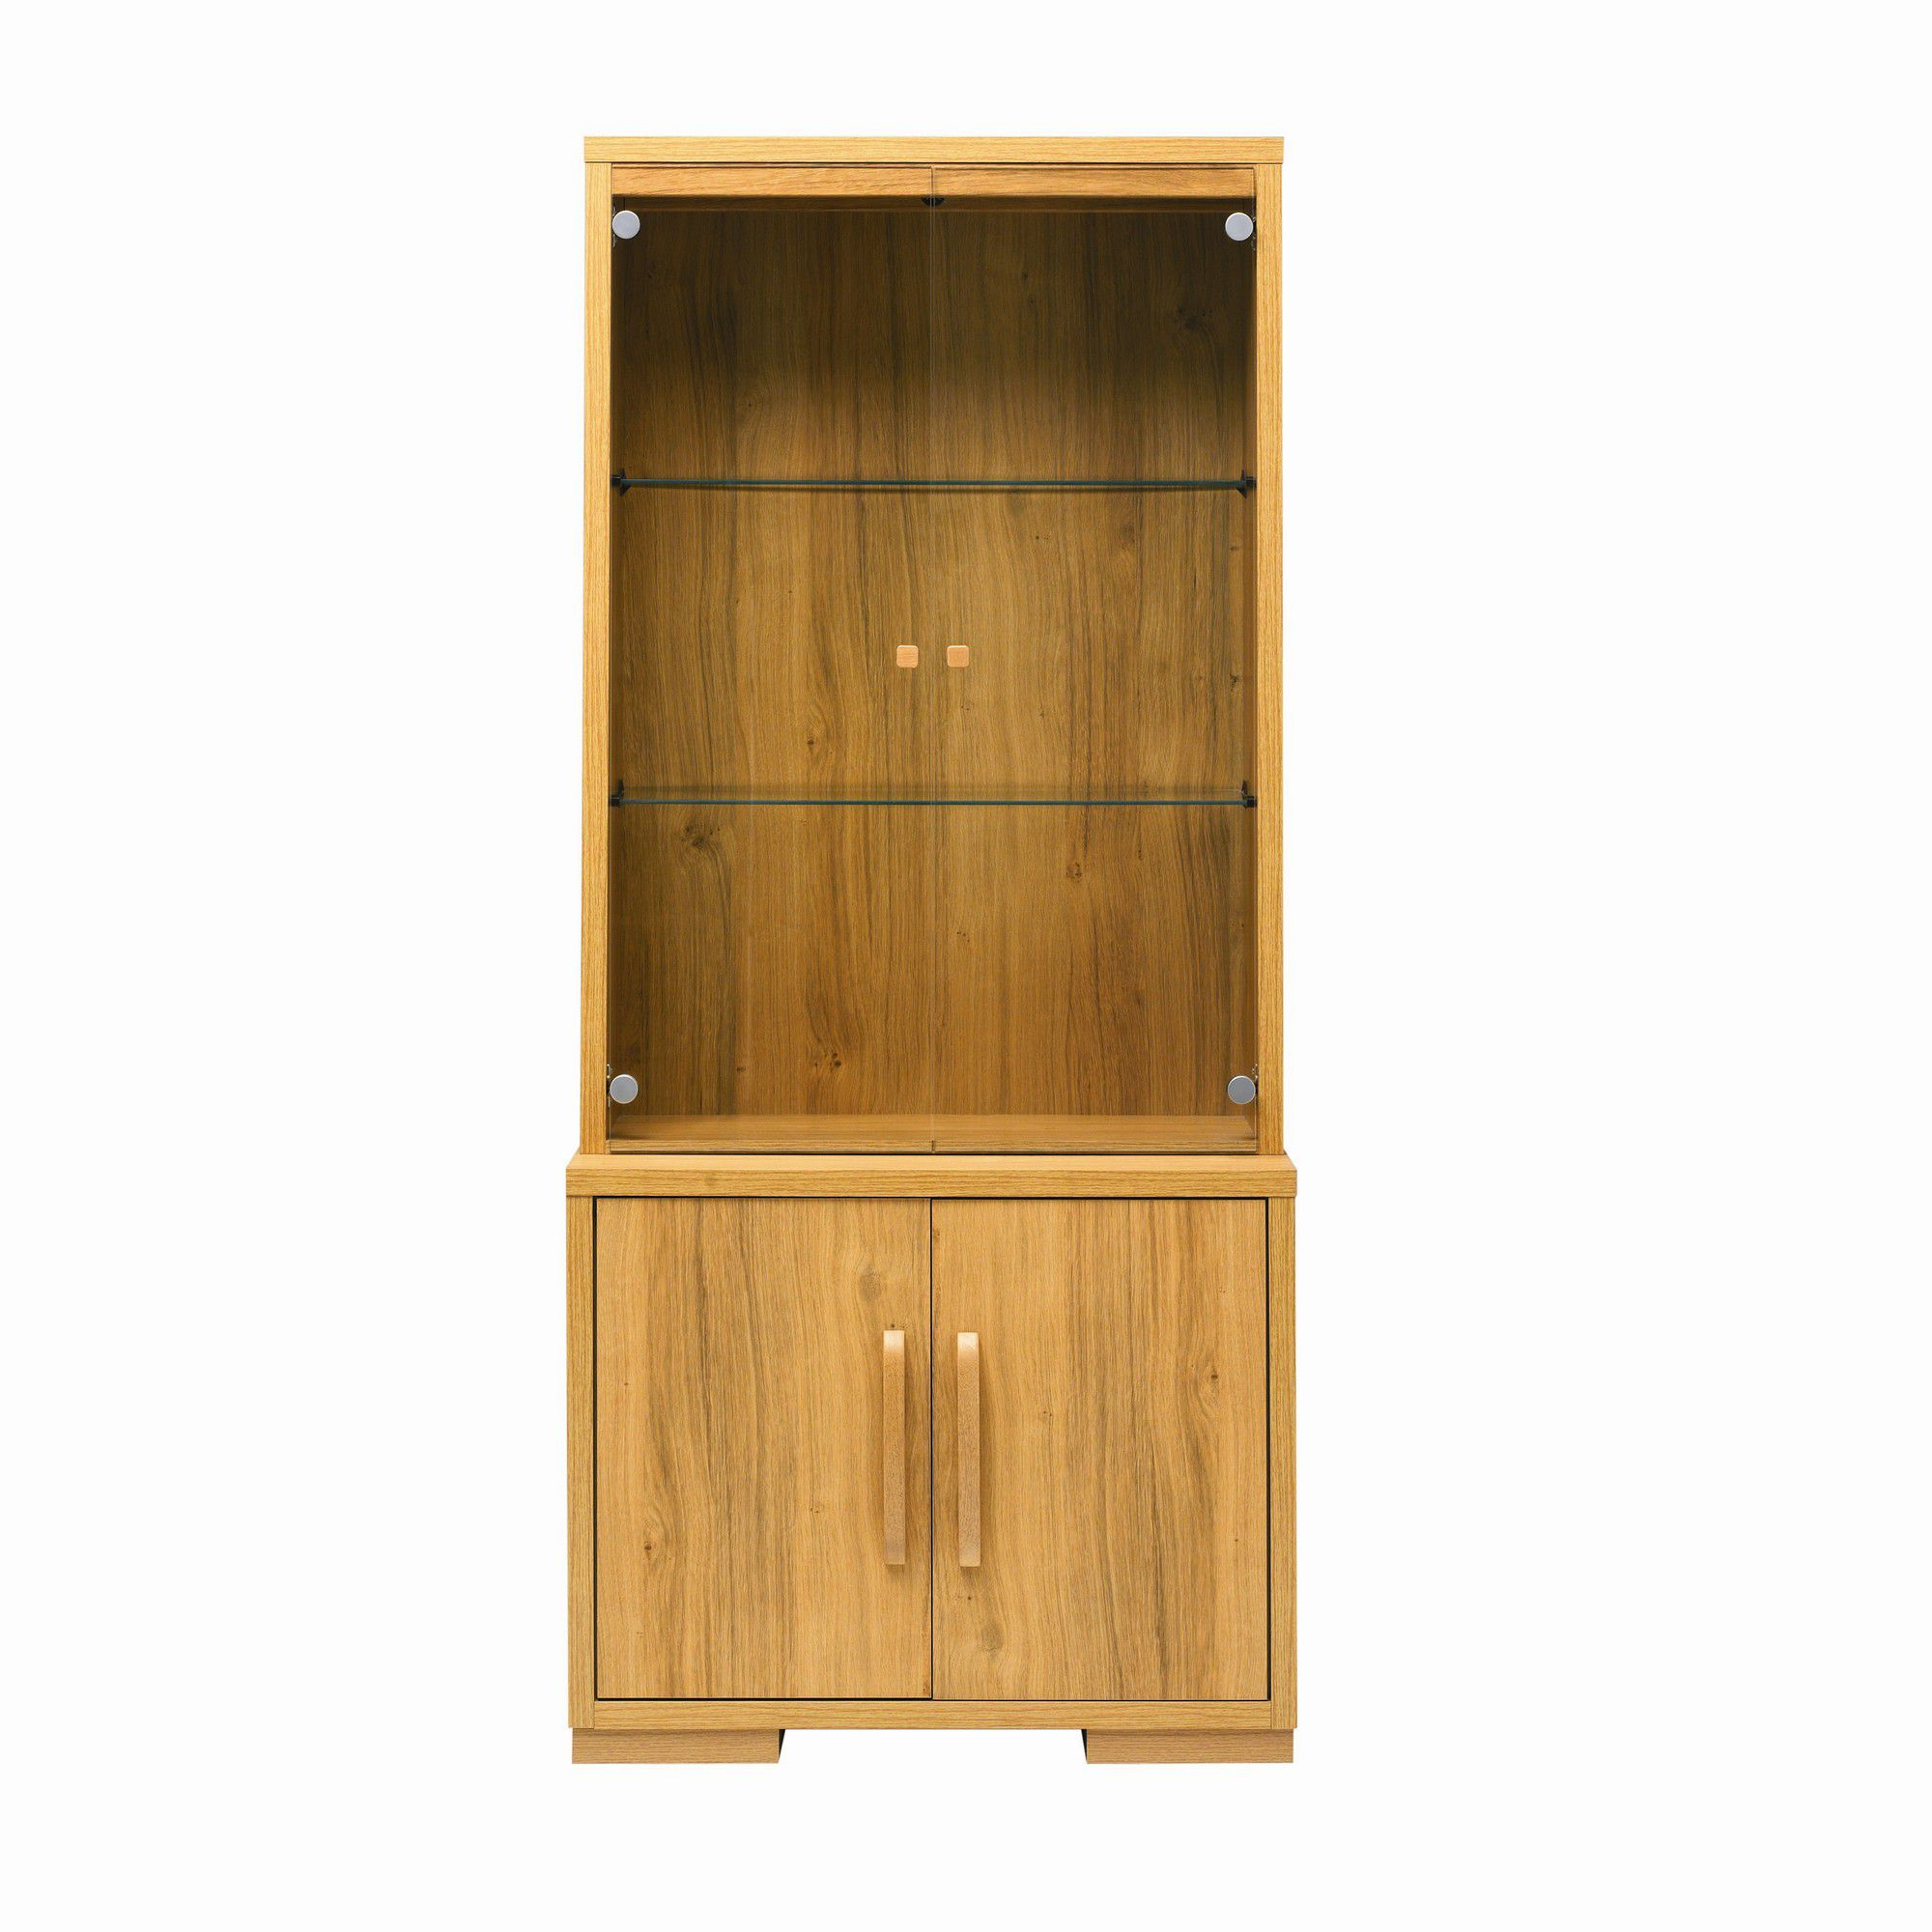 Caxton Strand Two Glazed Door Display Cabinet in Oak at Tesco Direct